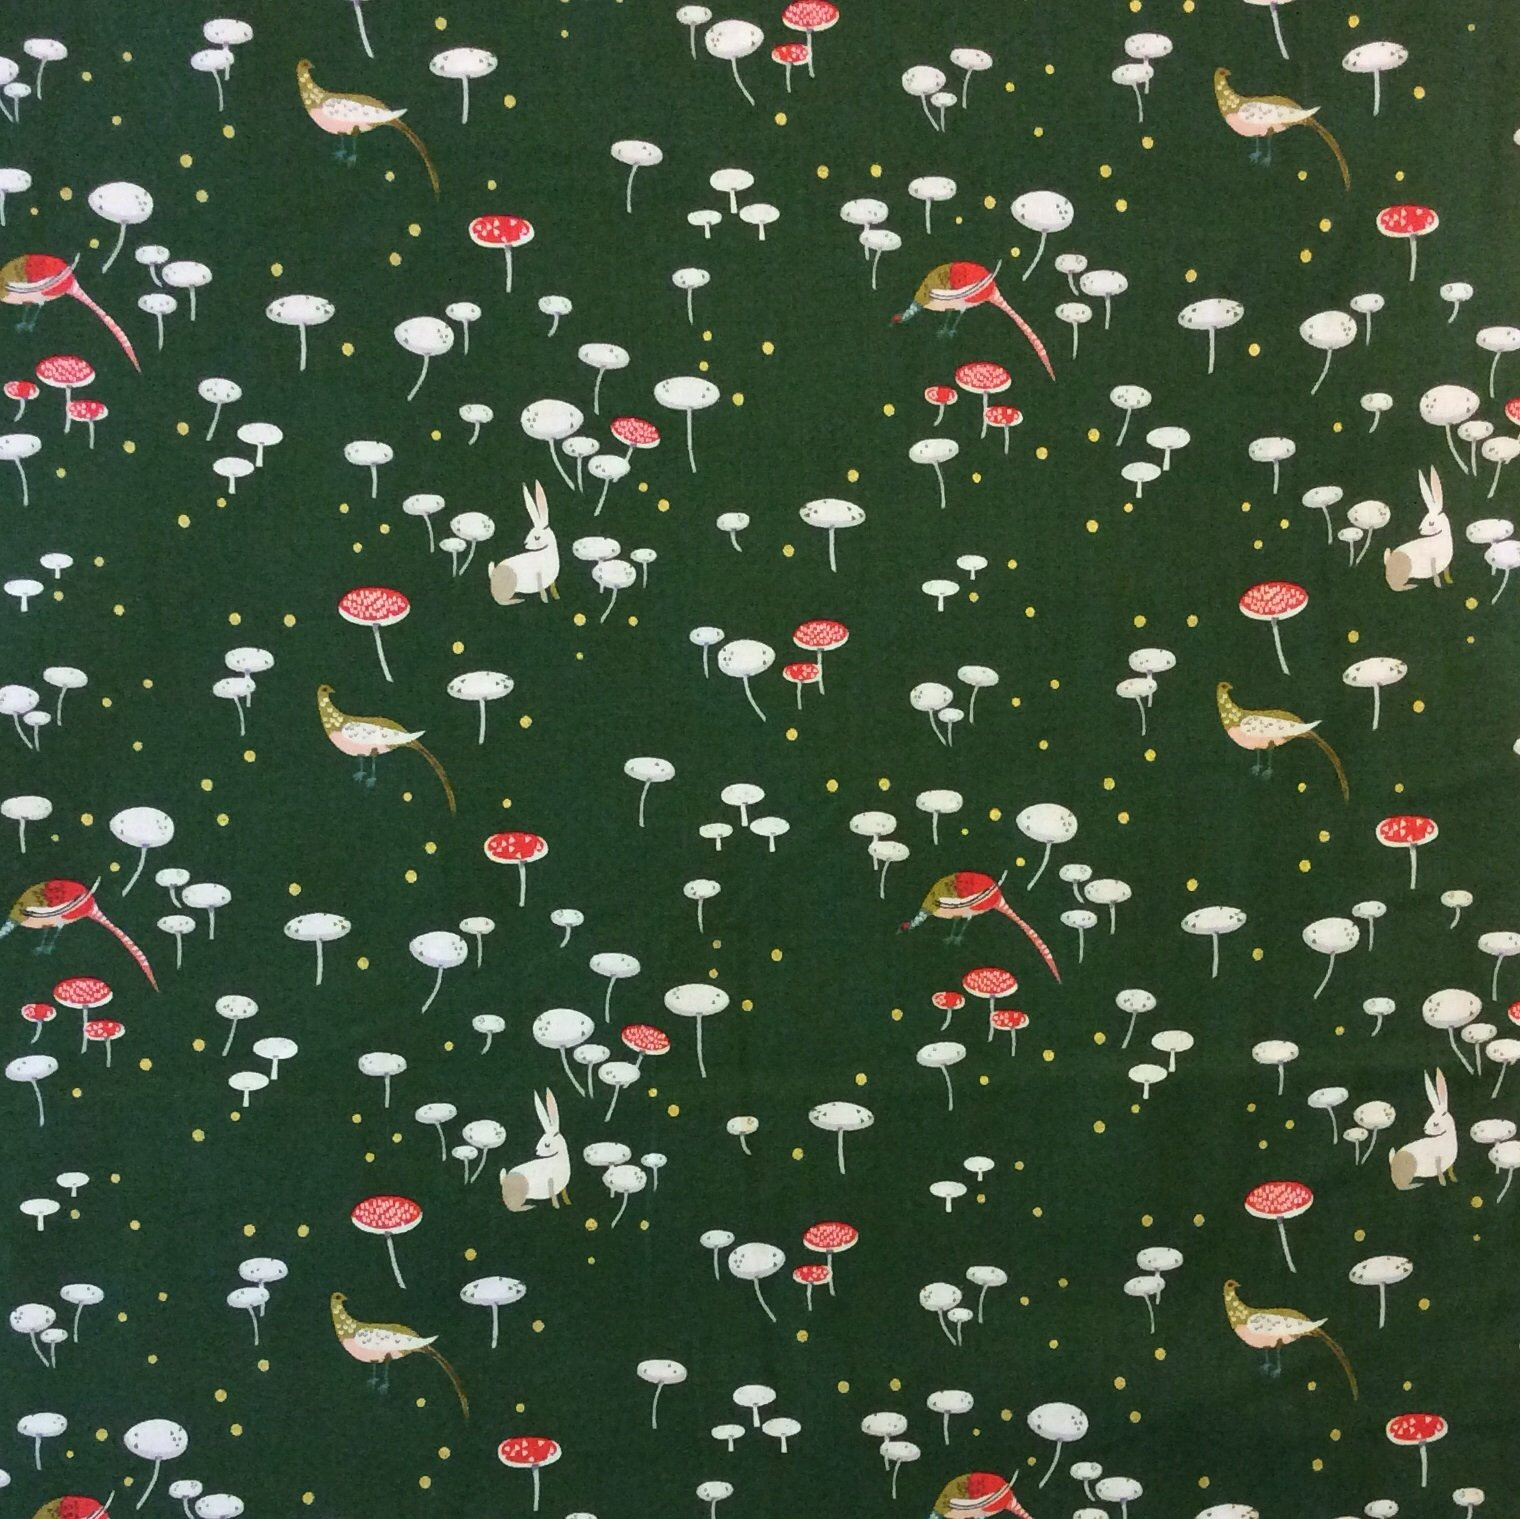 Fat Quarter! Rare, Out of Print! LIZZY HOUSE Mushroom Forest Birds Bunny Fantasy Wood Cotton Quilting Fabric FQAN38